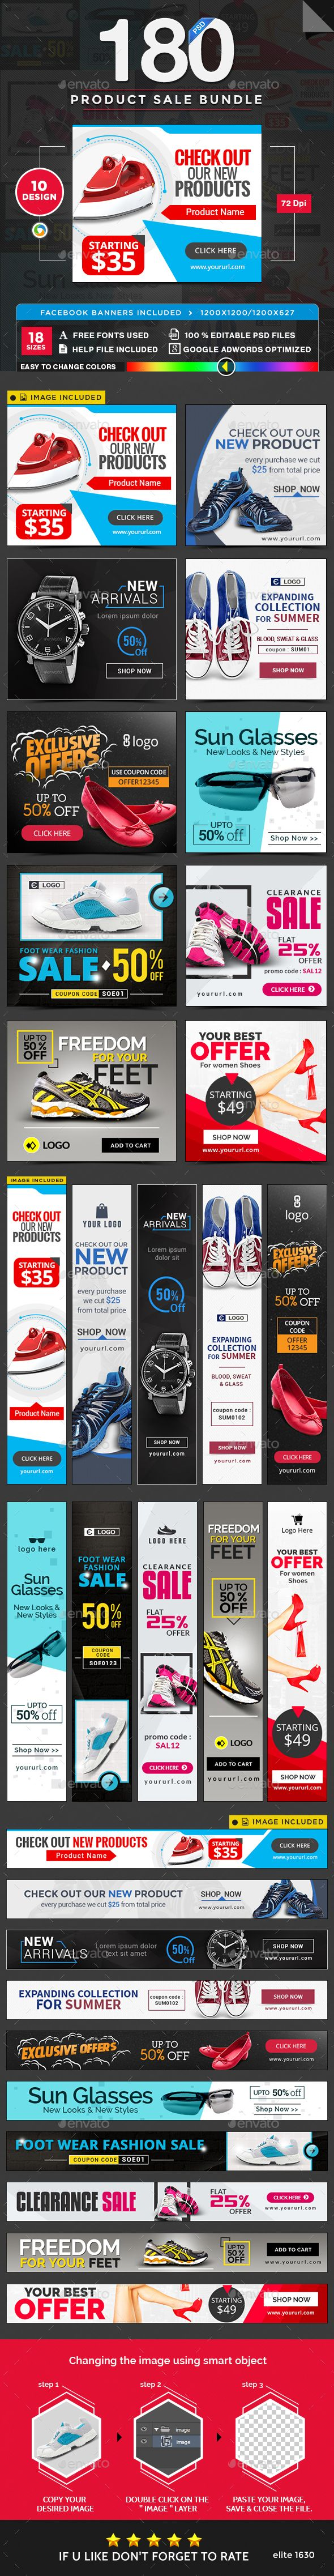 Product Sale Banners Bundle - 10 Sets - 180 Banners Templates PSD. Download here: http://graphicriver.net/item/product-sale-banners-bundle-10-sets-180-banners/16936118?ref=ksioks